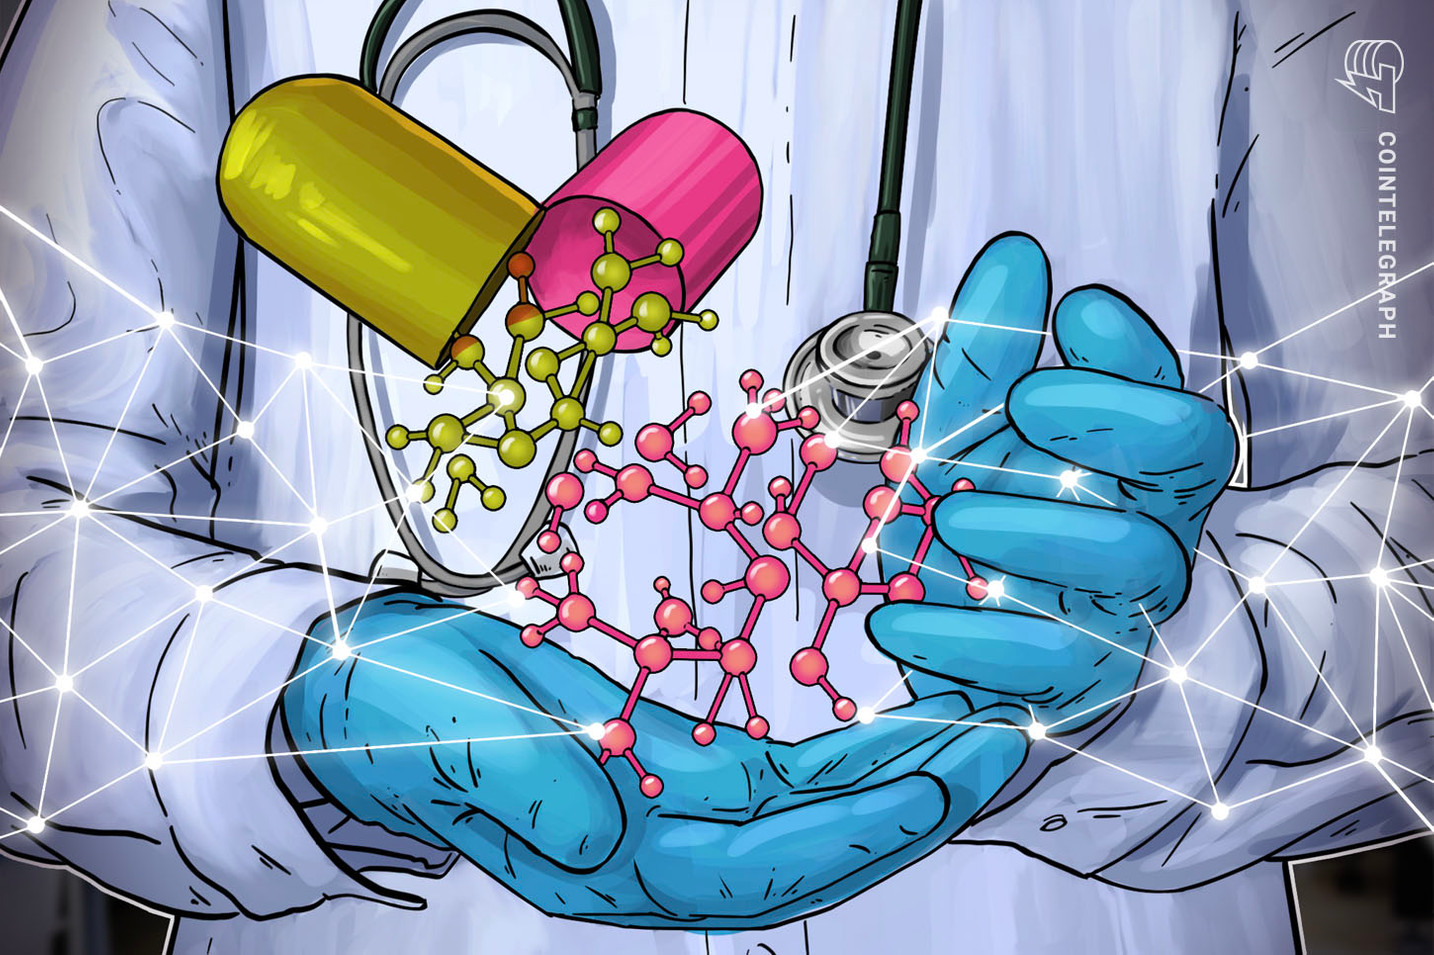 US Researchers Develop Blockchain Protocol to Fight Counterfeit Pharmaceuticals